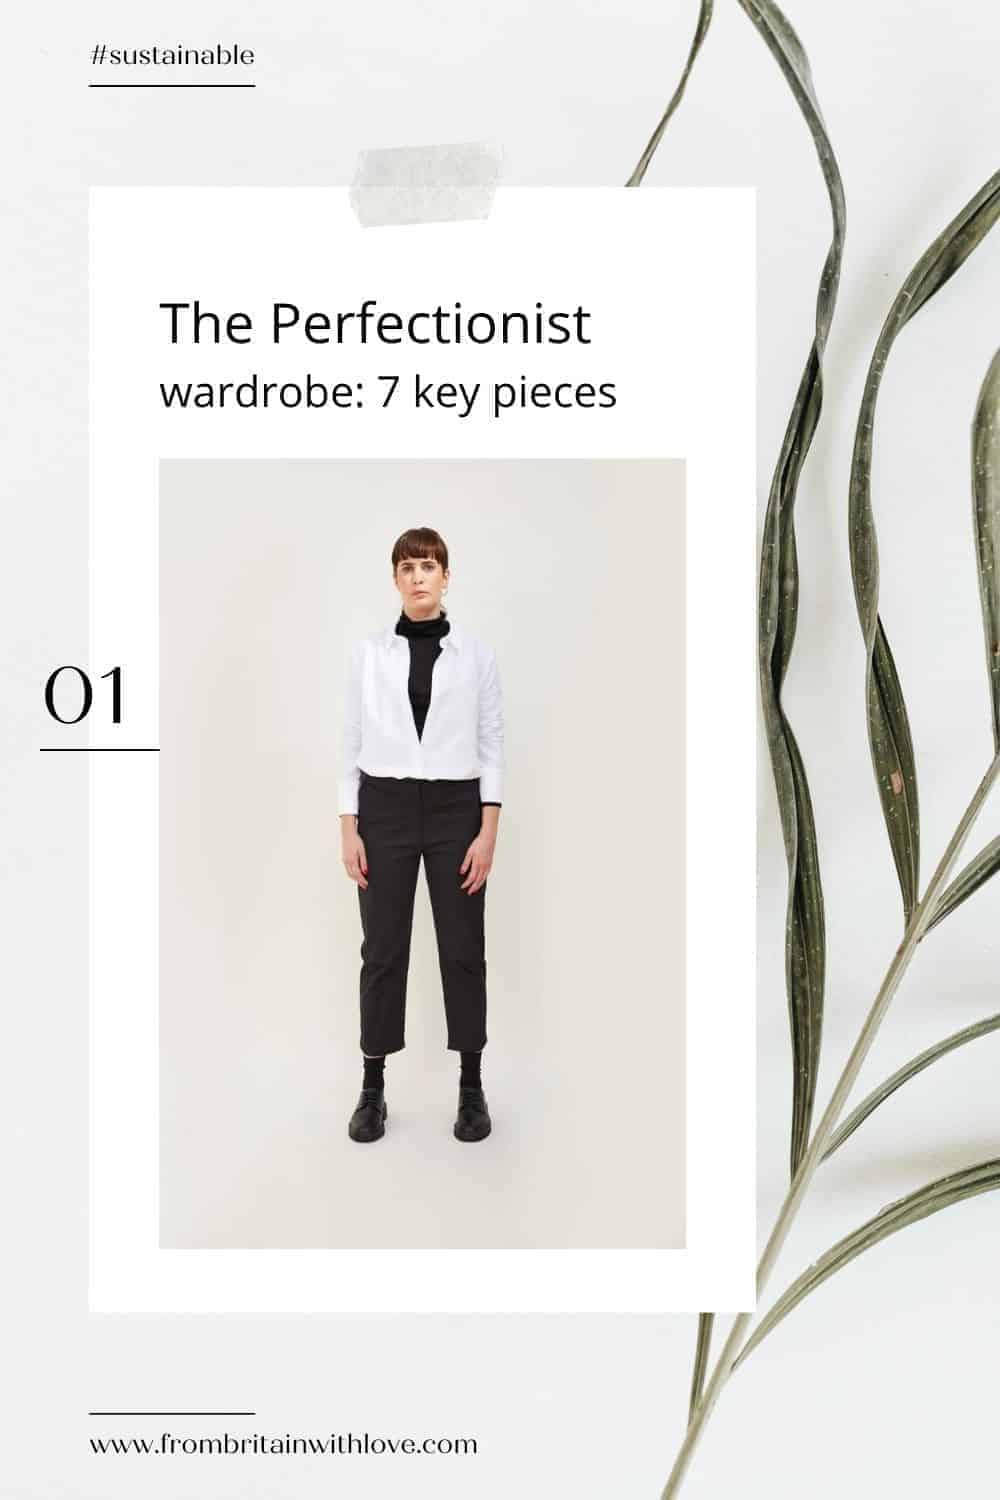 love this perfectionist wardrobe - 7 key sustainable clothing pieces to take you anywhere, in any season and that you'll love forever - the perfect white shirts, lambswool knitwear, tailored trousers and perfect little black dress all sustainably made in britain #sustainable #clothing #essentials